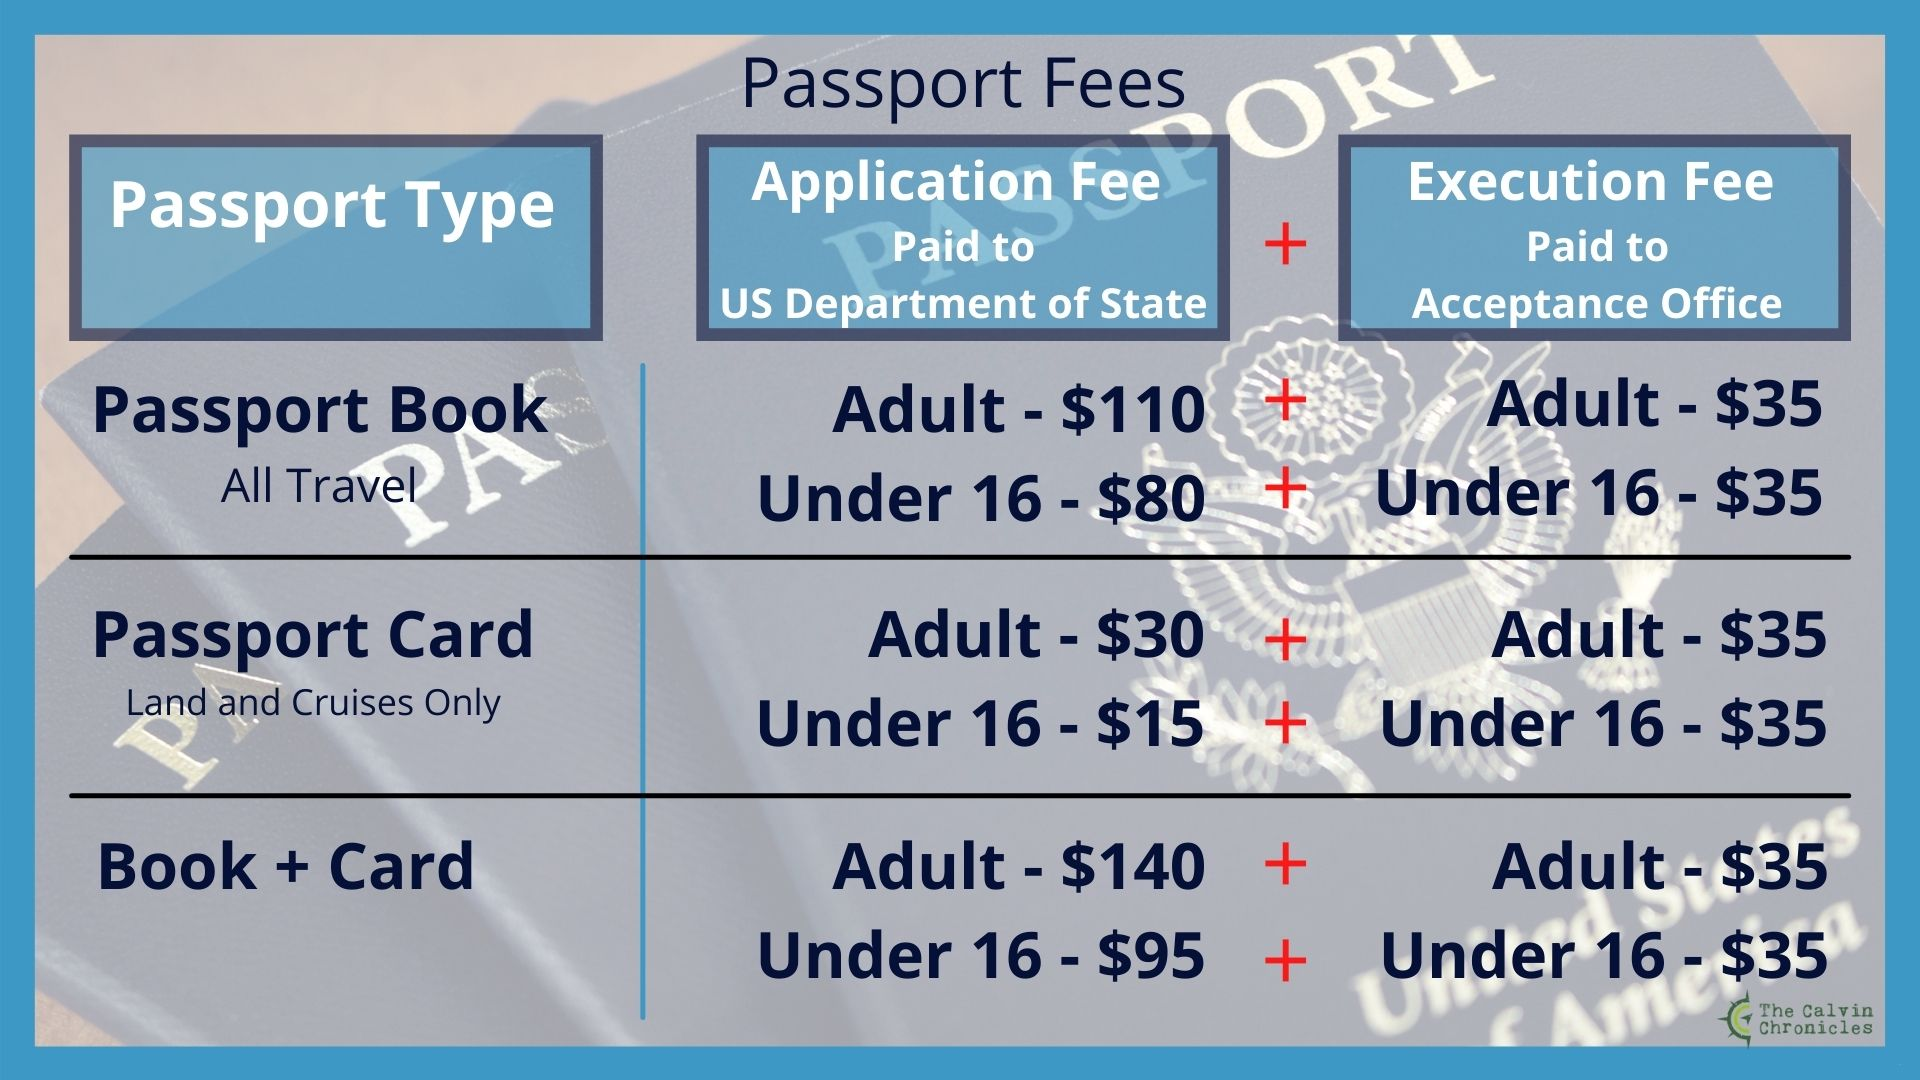 Graphic displaying passport application fees as of 2021